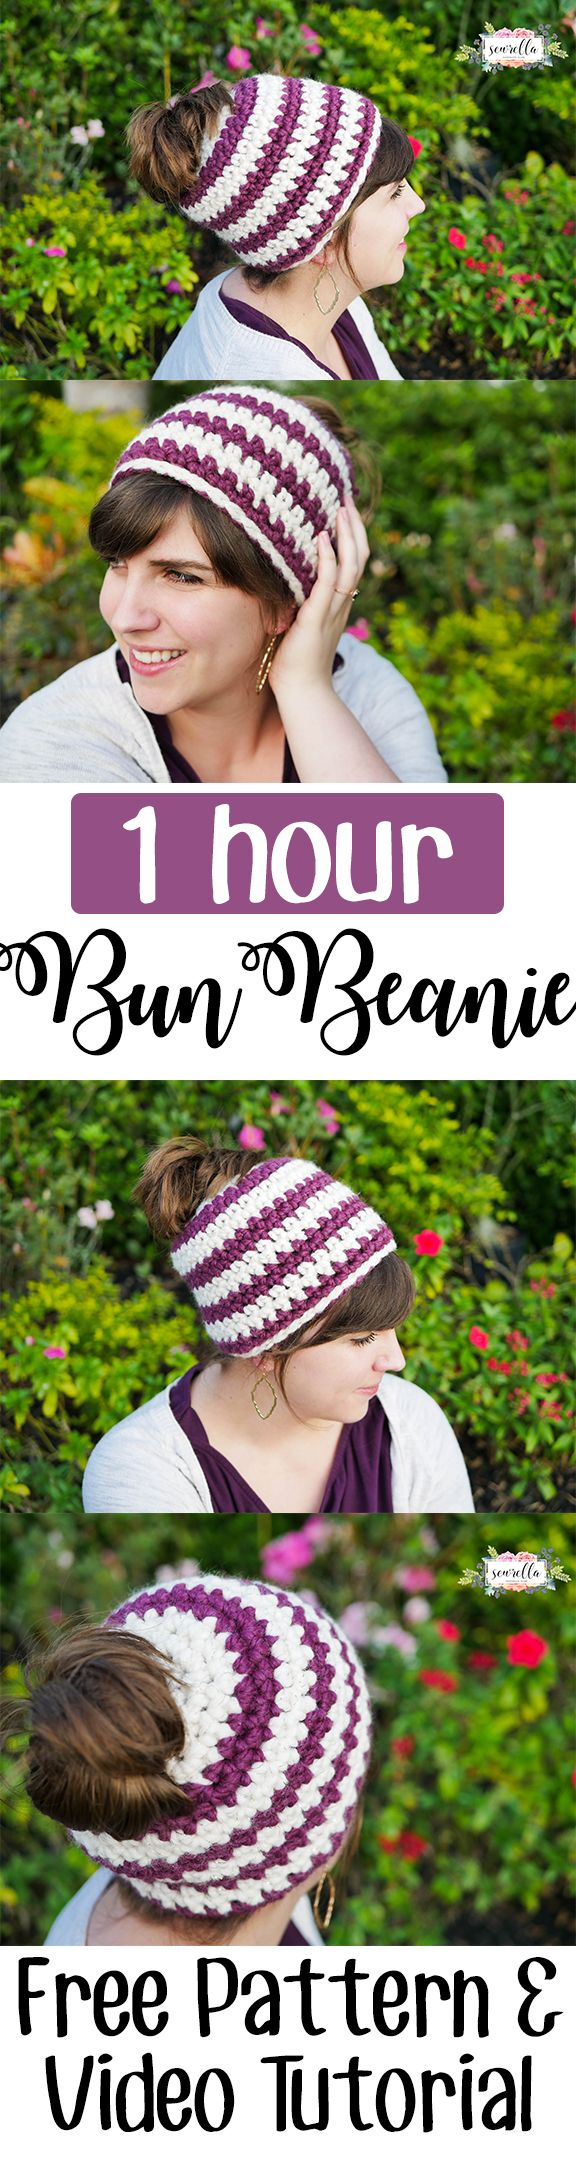 Make this beginner friendly crochet messy bun or mom bun beanie in 1 hour  with simple single crochet stitches!  74bb86496ca